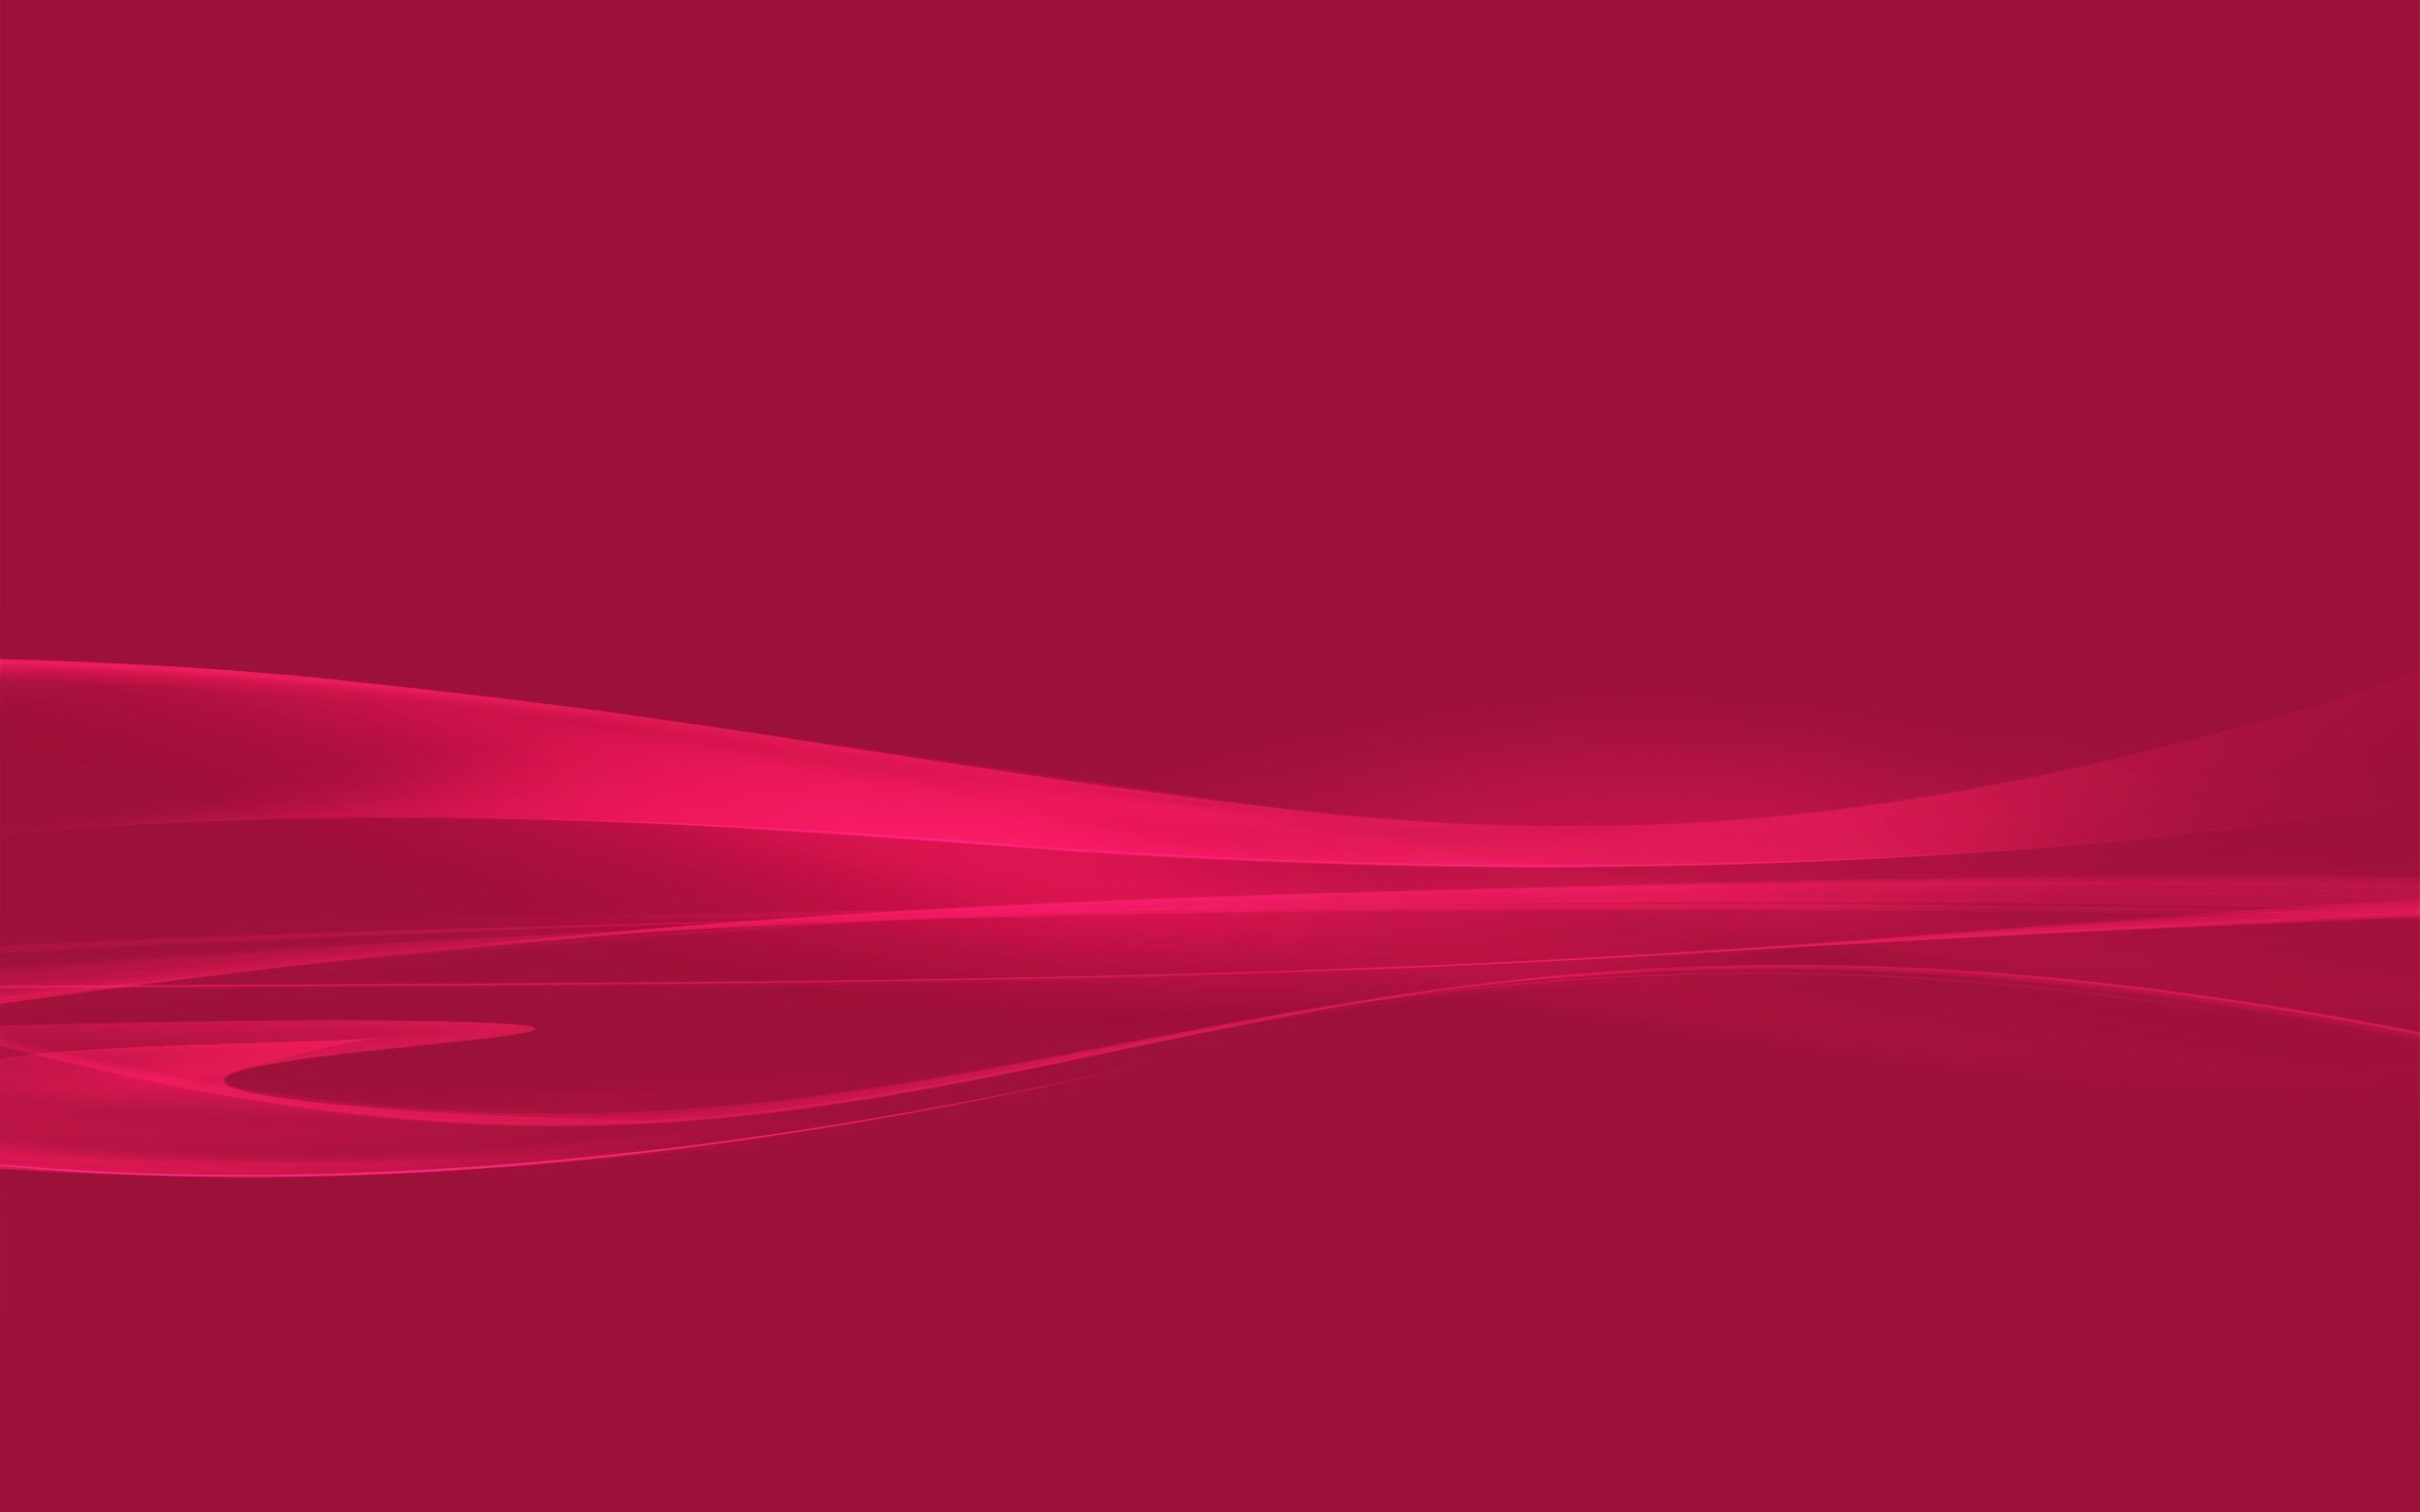 2560x1600 Red Plain 78 206930 Images HD Wallpapers  Wallfoy.com